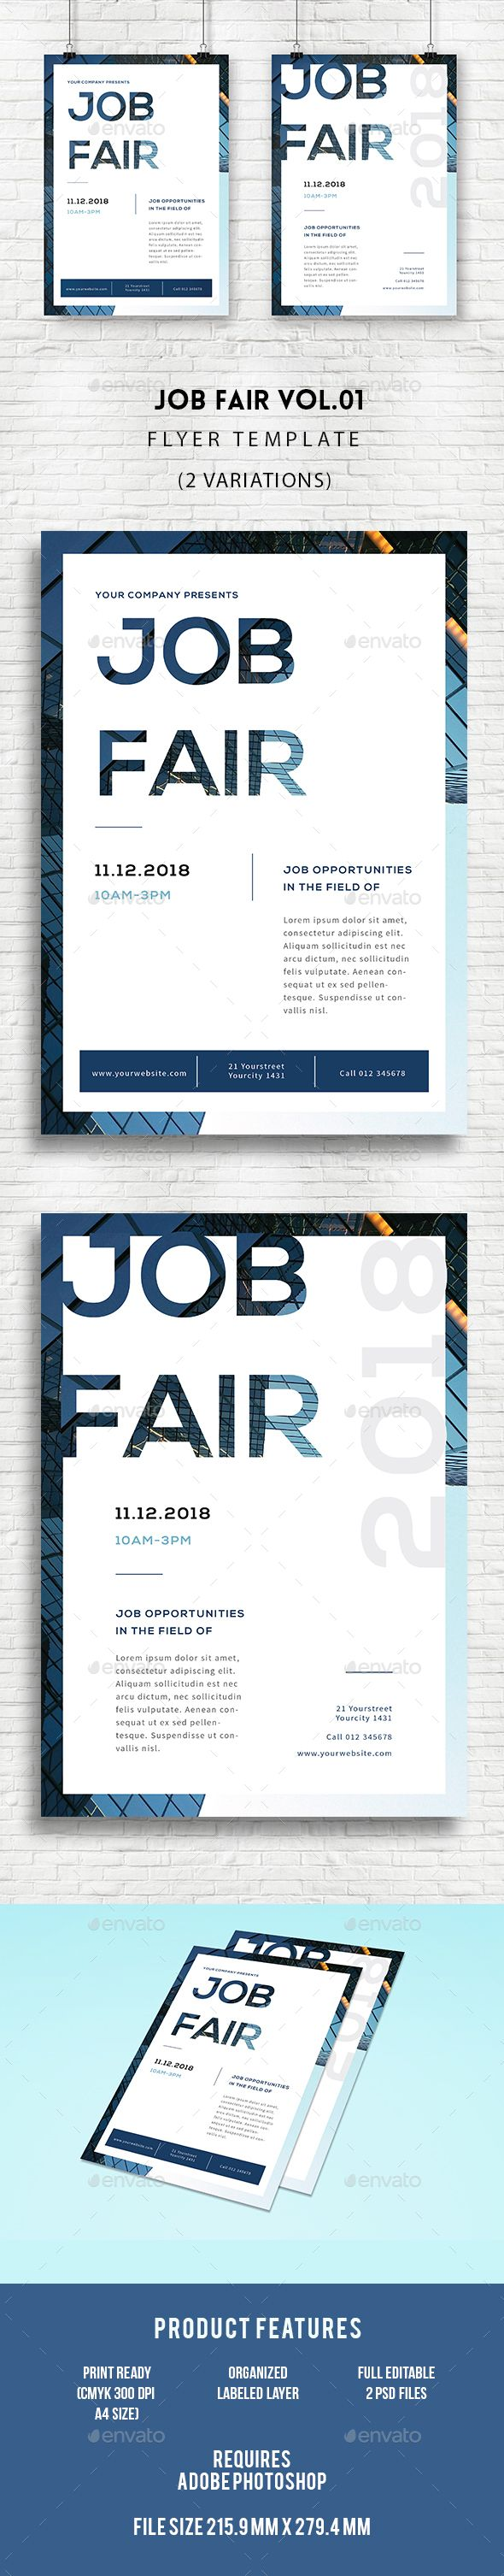 Job Fair Flyer Template PSD. Download here: http://graphicriver.net/item/job-fair-flyer/16847034?ref=ksioks